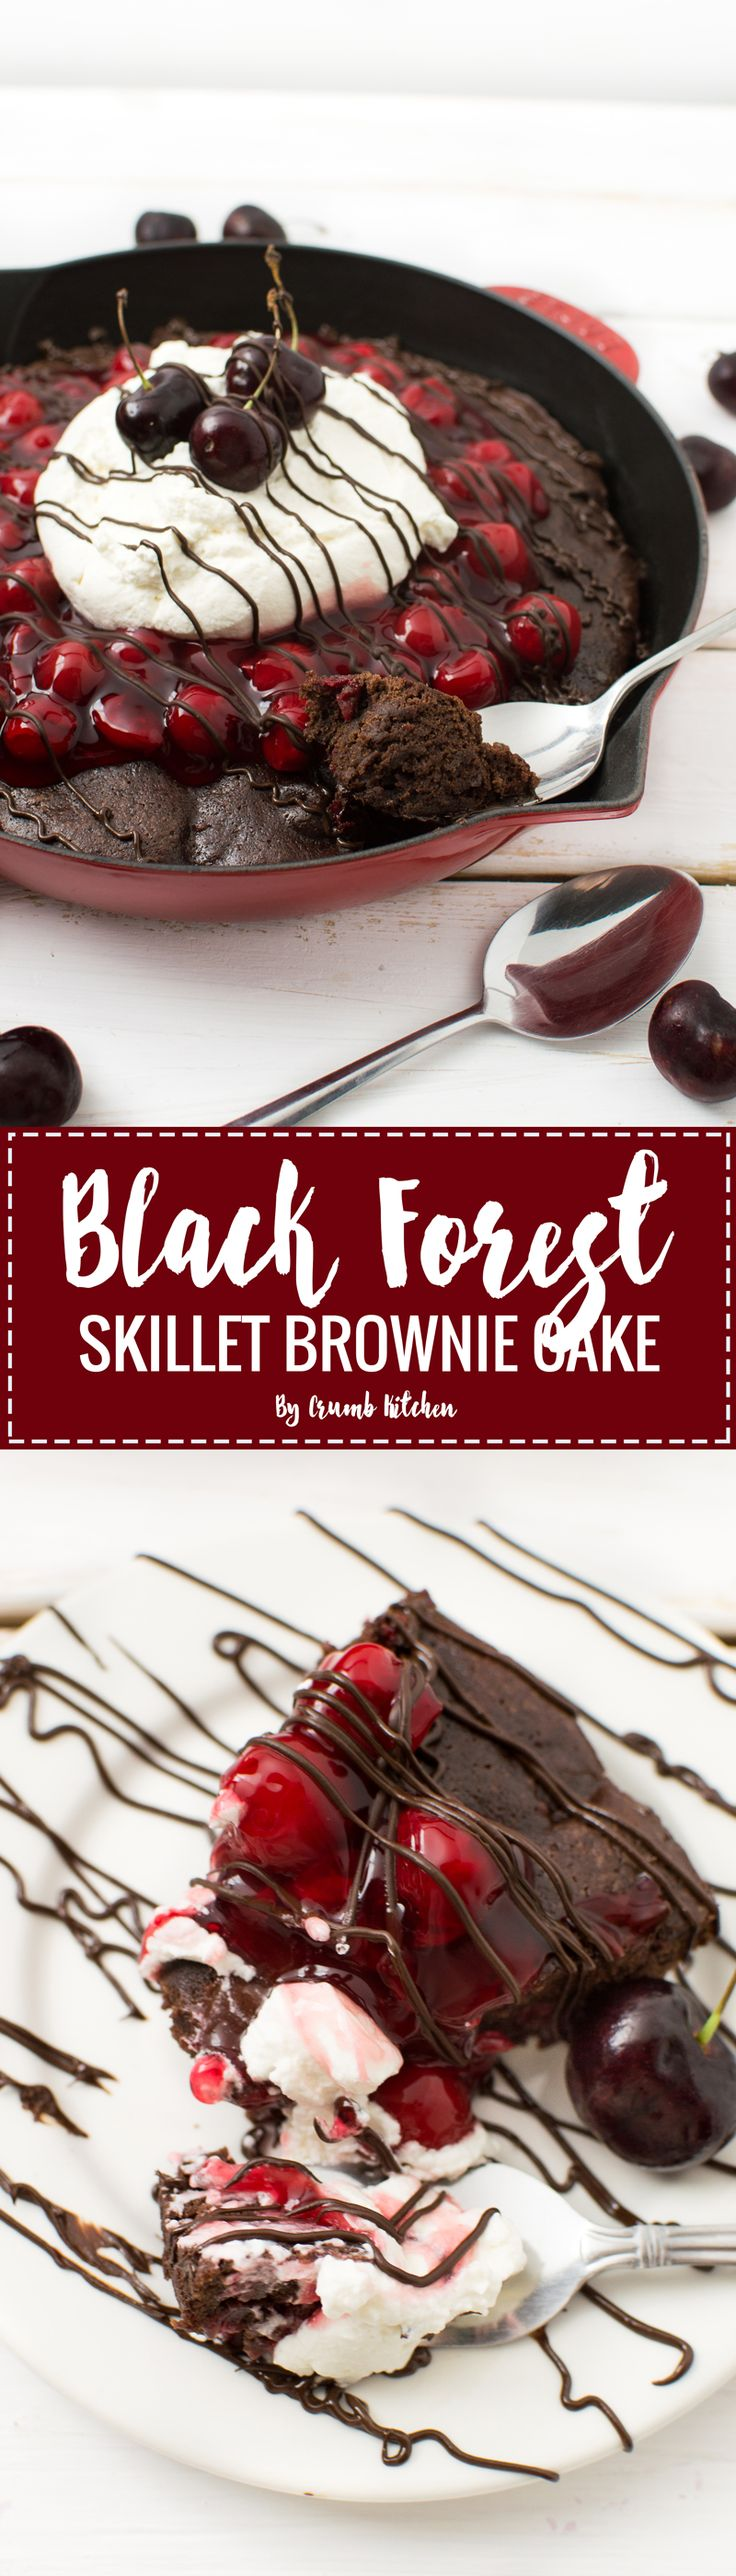 This rich, chocolatey Black Forest Skillet Brownie Cake is loaded with cherry pie filling, homemade whipped cream and a chocolate drizzle. | Crumb Kitchen